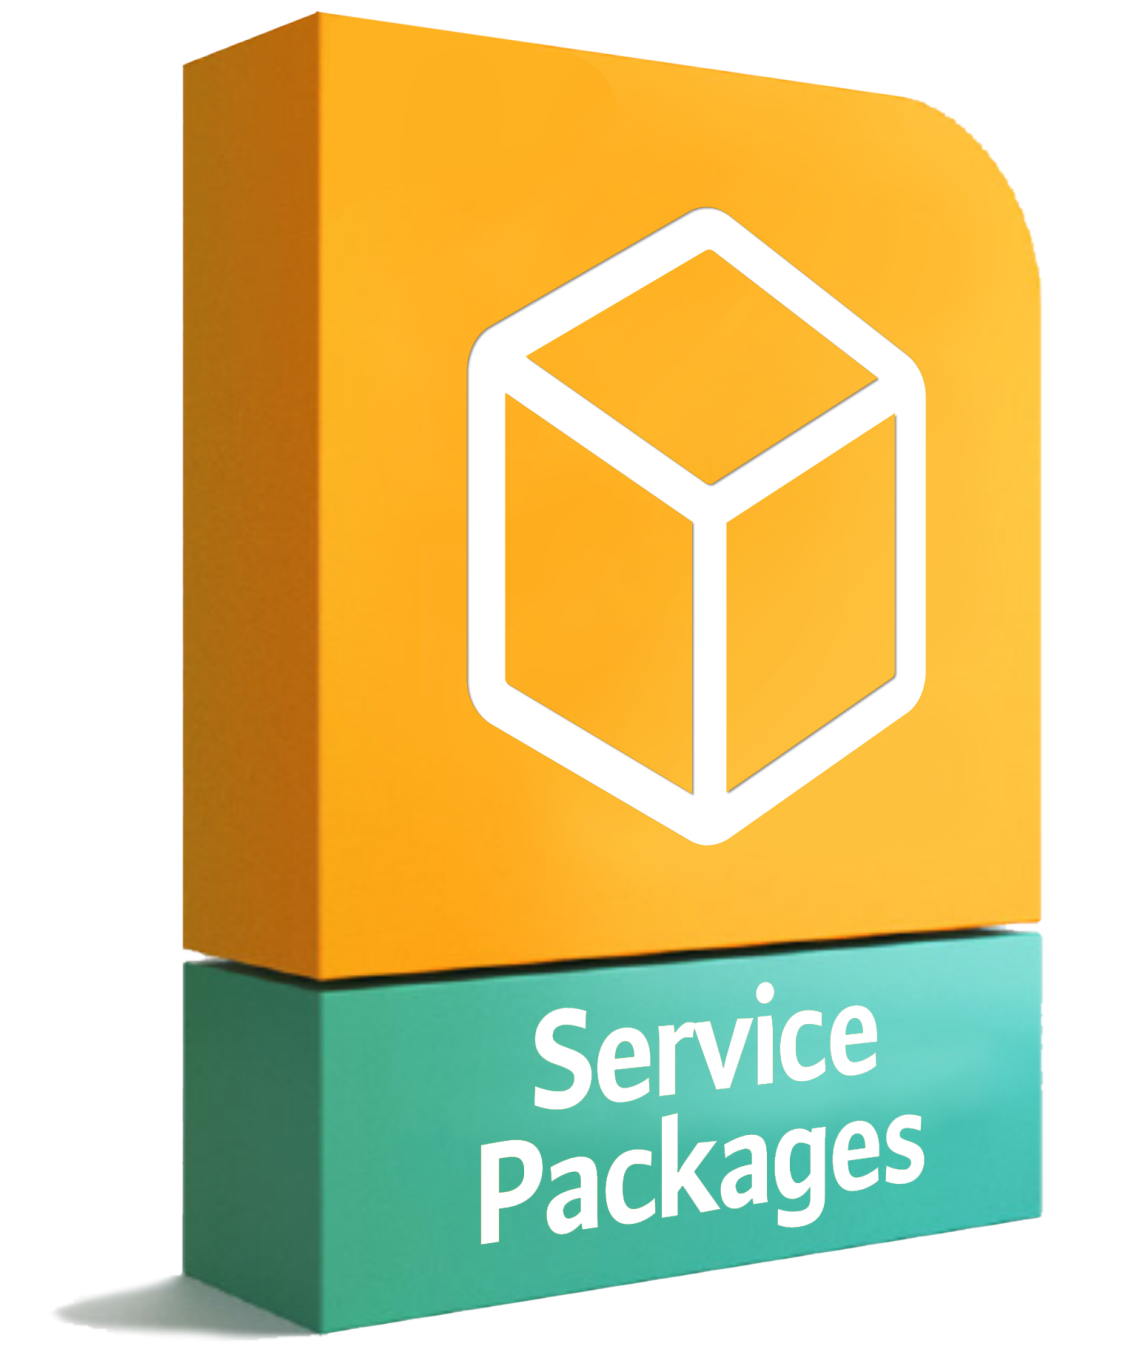 Icon for Service Packages - after sales service packages